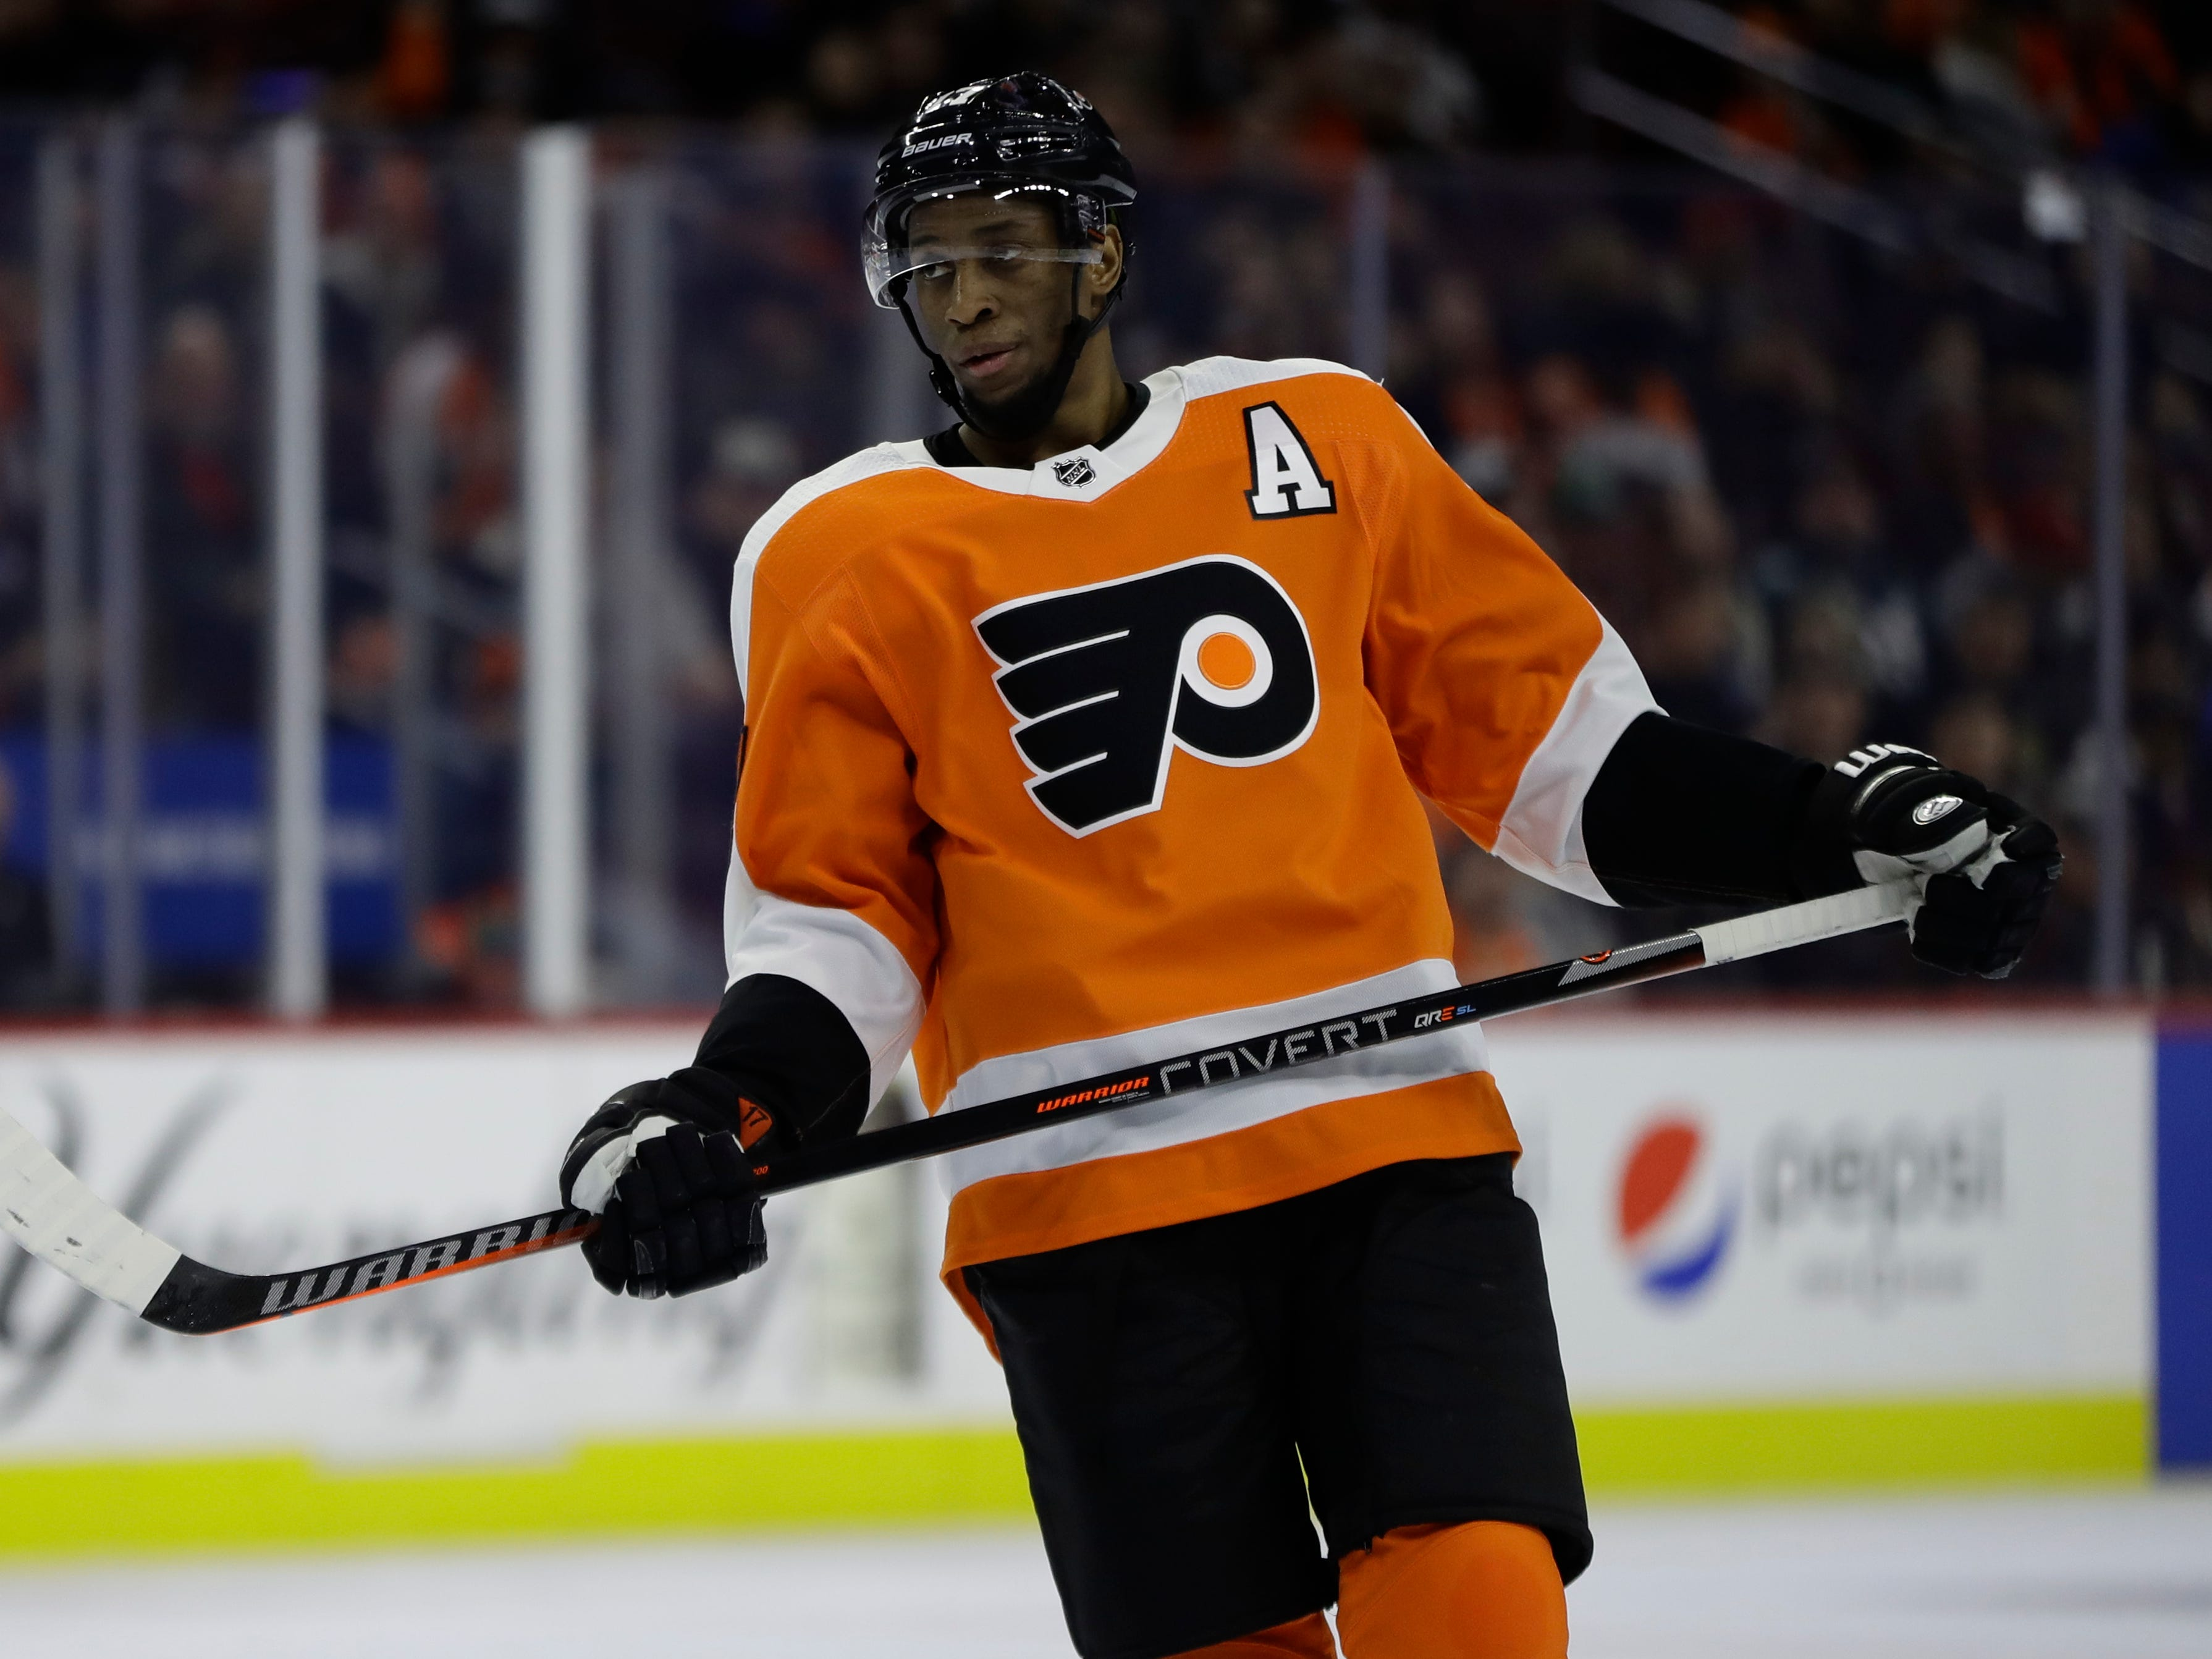 4. Wayne Simmonds, RW, Philadelphia: The Flyers are making a late push to make the playoffs, so do they hang on to this gritty, tough-minded, goal-scoring winger? Simmonds will be a popular free agent on July 1.